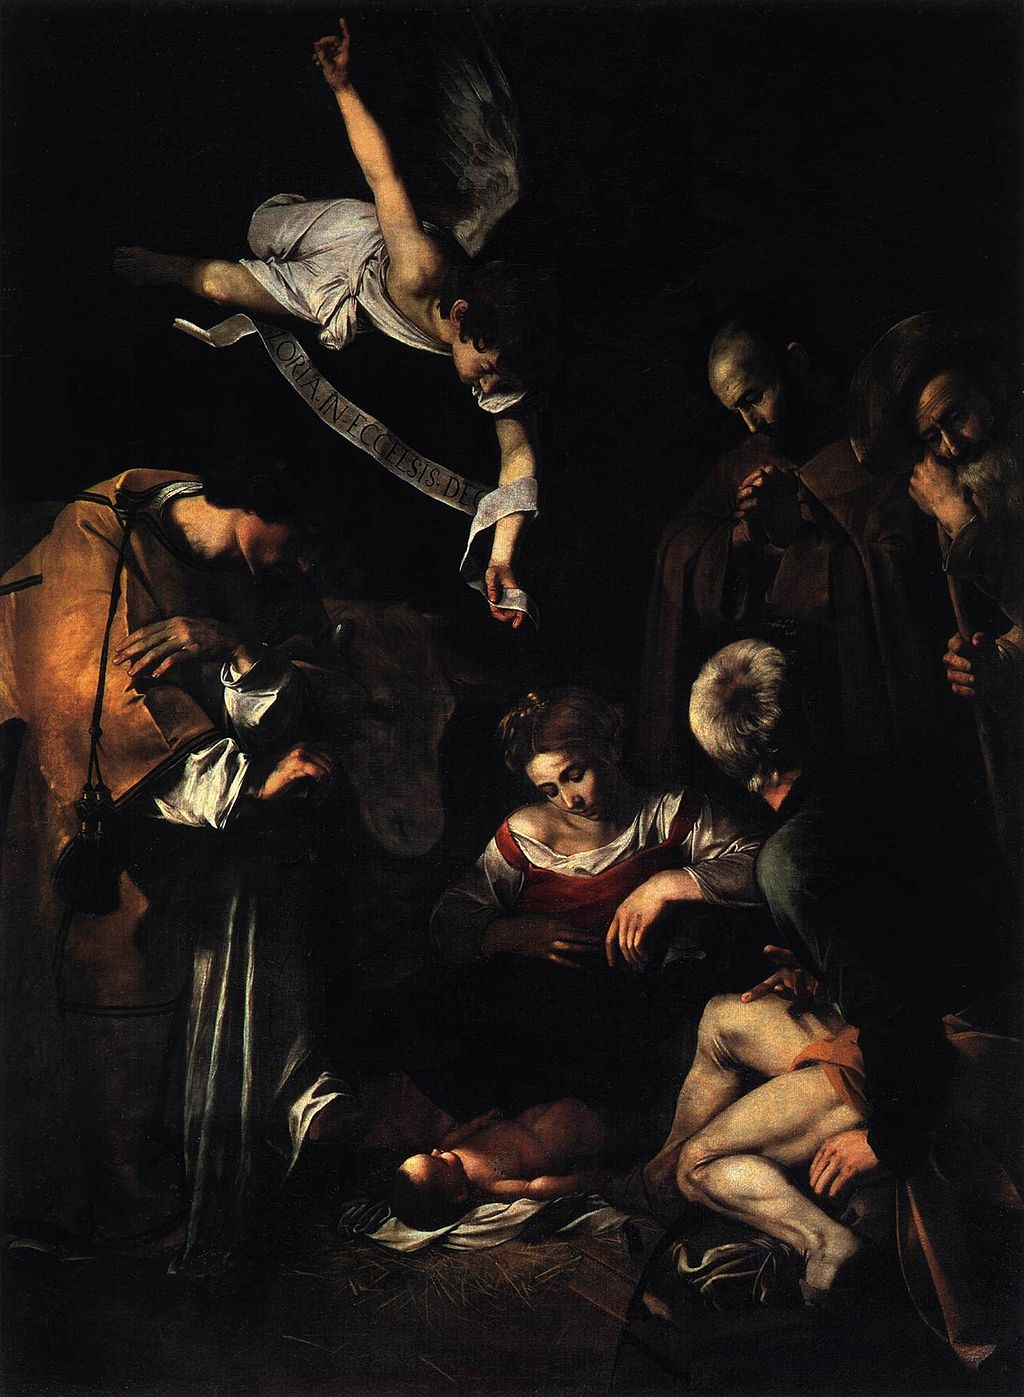 Michelangelo Merisi da Caravaggio, Nativity with St. Francis and St. Lawrence, 1609. Image courtesy of  Wikimedia Commons .